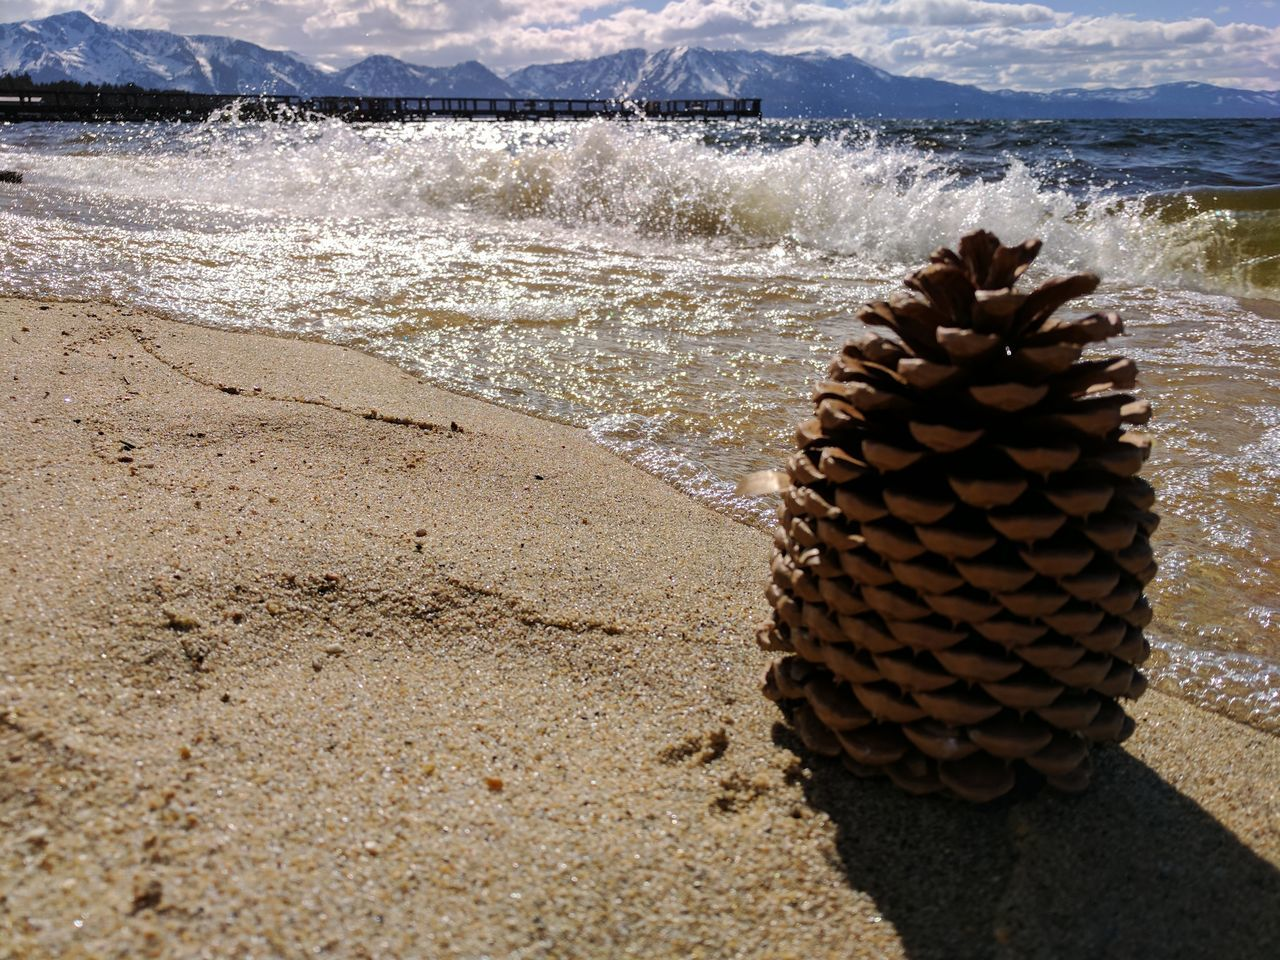 Pine Cone Sand Sunlight Landscape Beach Mountains And Beach Alpine Lake Summer Water Waves Lake Beauty In Nature Outdoors California United States